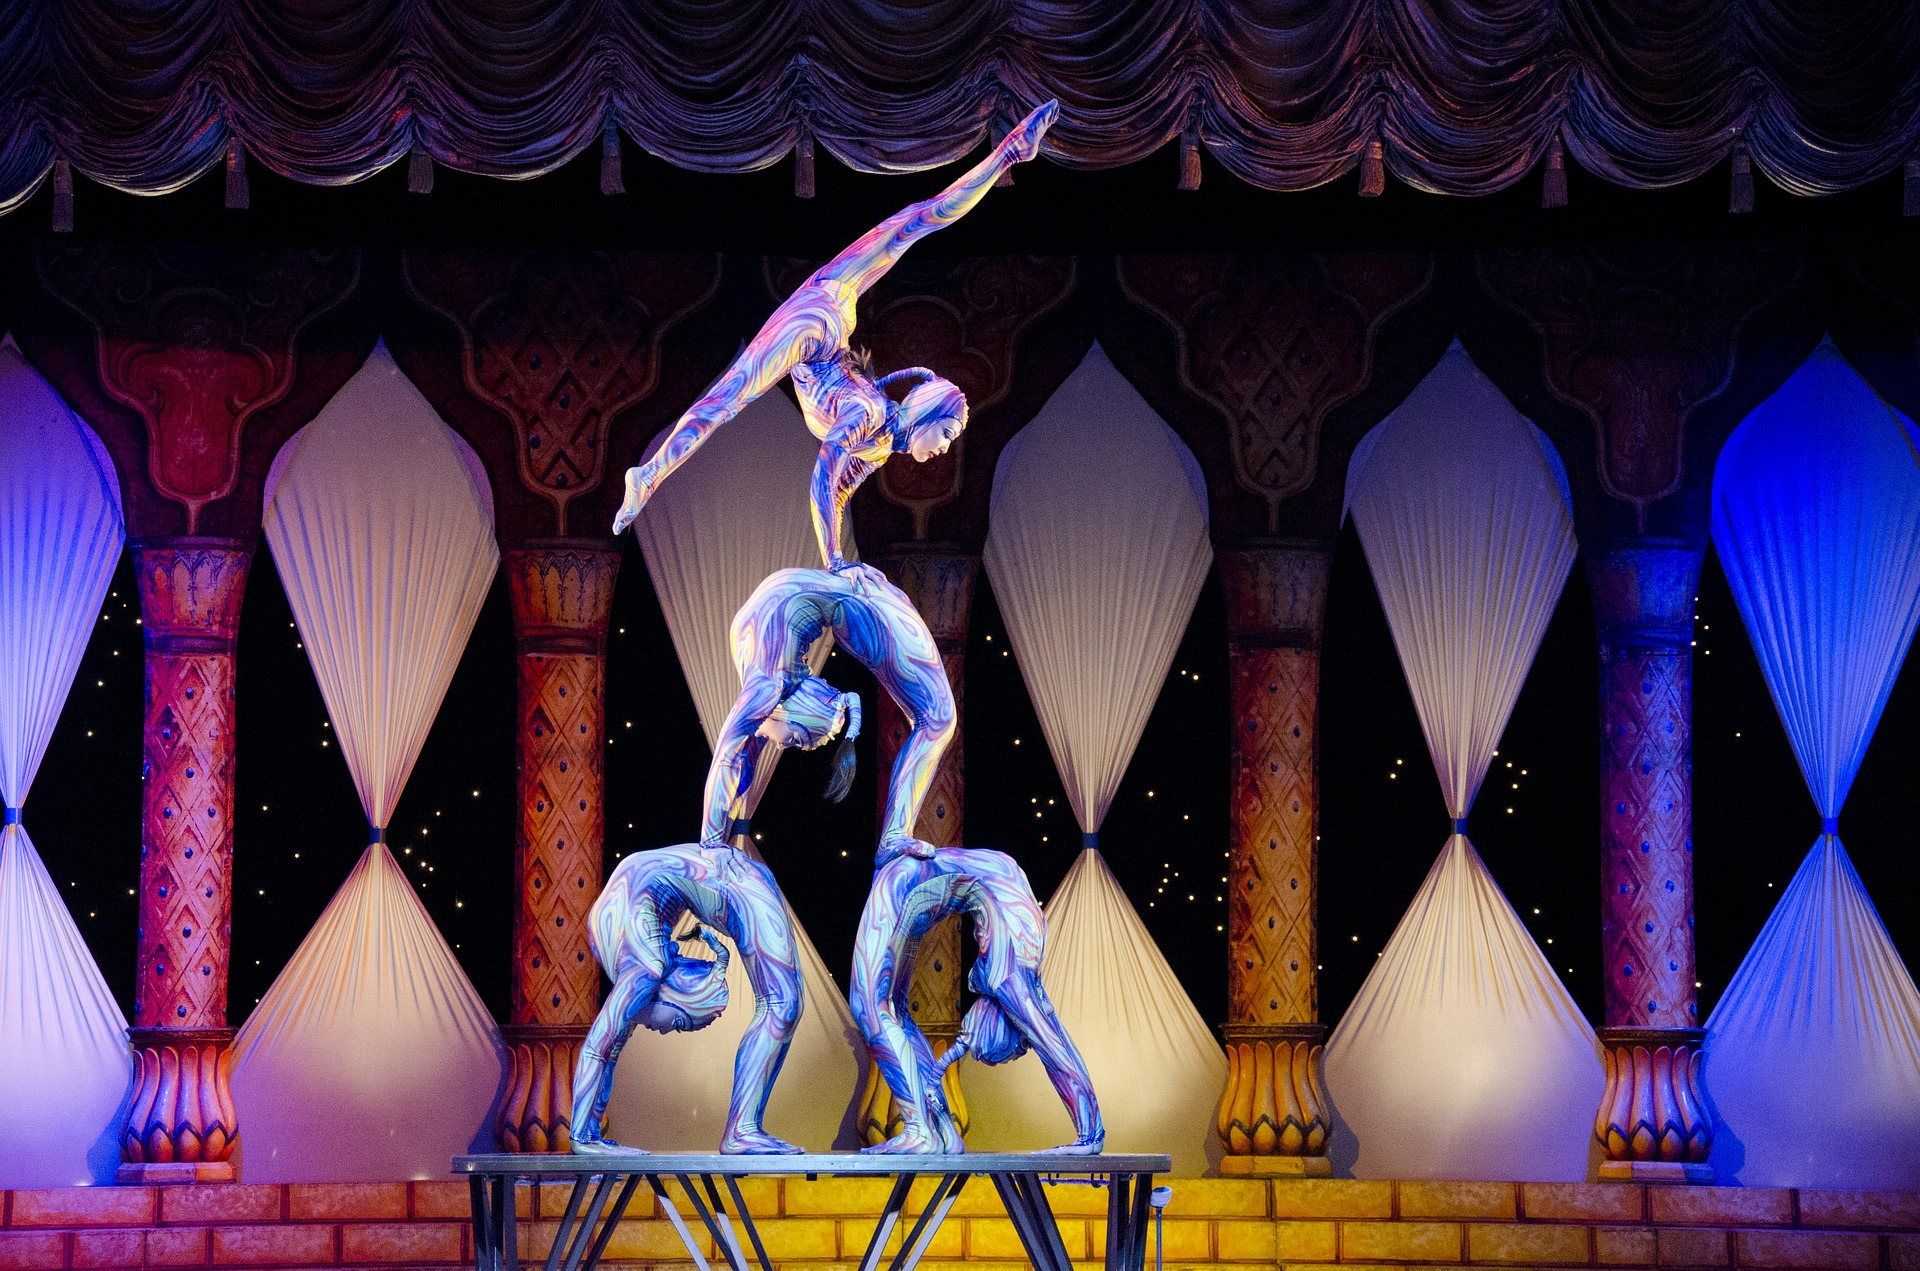 A seemingly psychodelic photo. In the foreground, two acrobats are bent over backwards. On their stomaches, another acrobat stands, also bent over backwards. On top of that acrobat, a fourth acrobat holds themselves up with their arms and their legs in the air doing the splits. All the acrobats are dressed in tight-fitting clothes with blue-purple swirls on. In the background, there are columns with curtains in between that are pinched in the middle, creating a diamond effect.